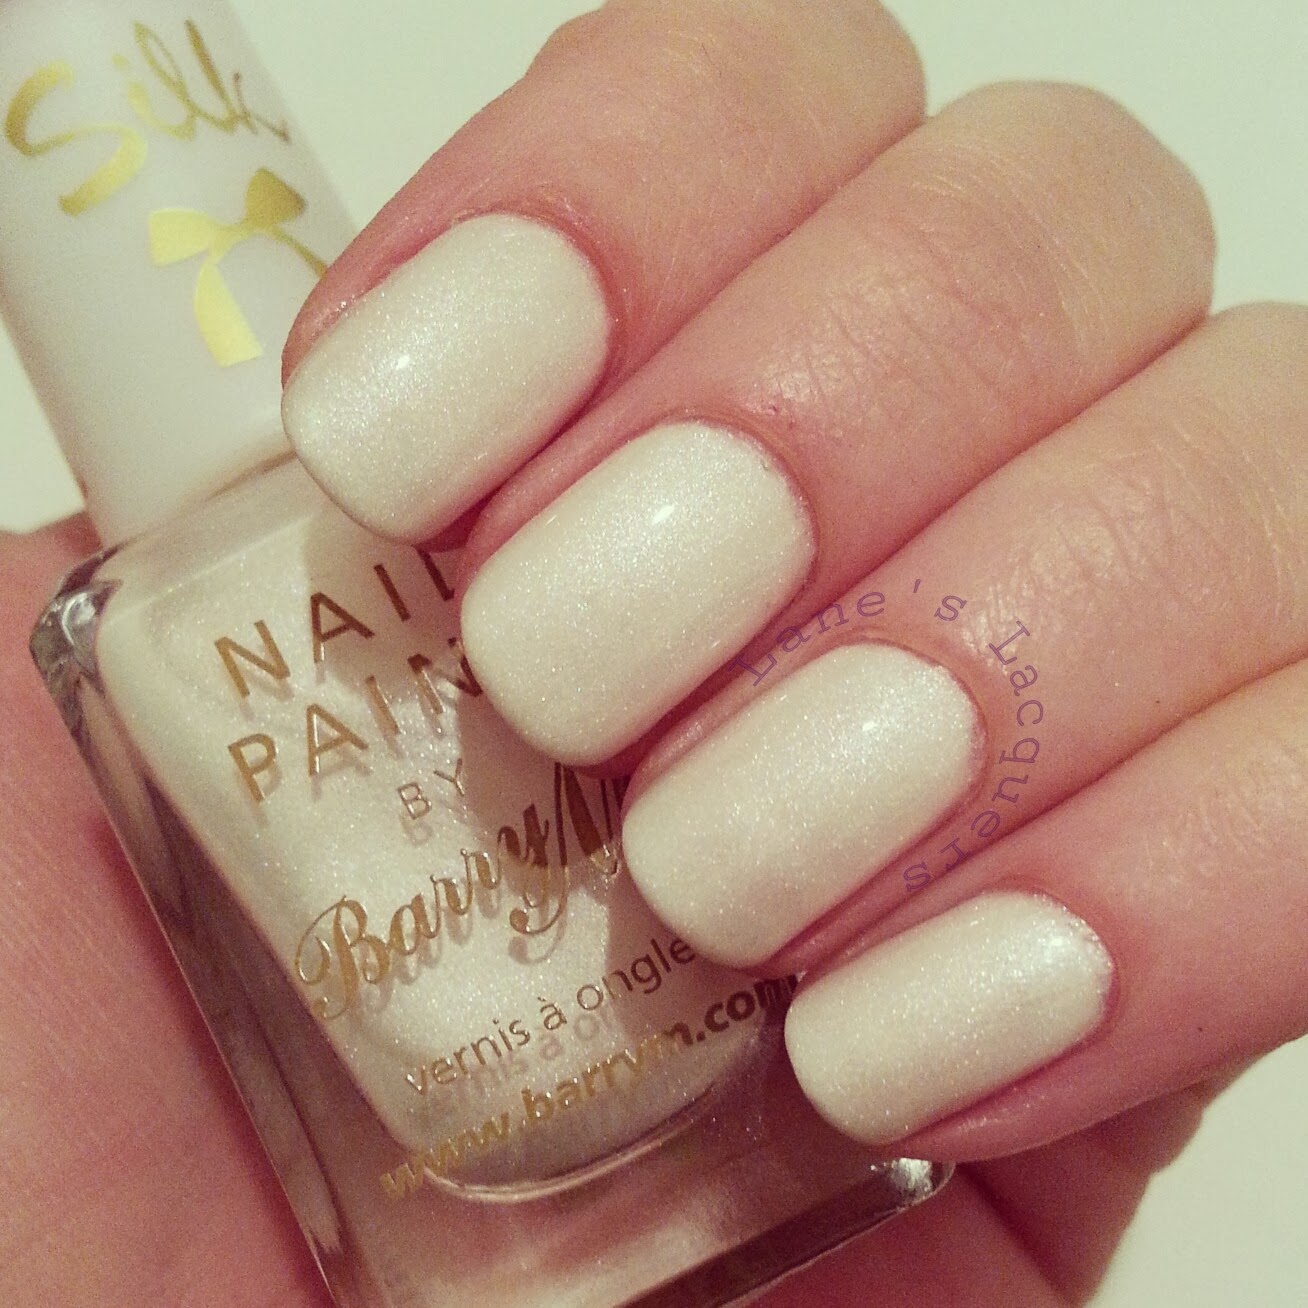 barry-m-silk-pearl-topcoat-swatch-nails